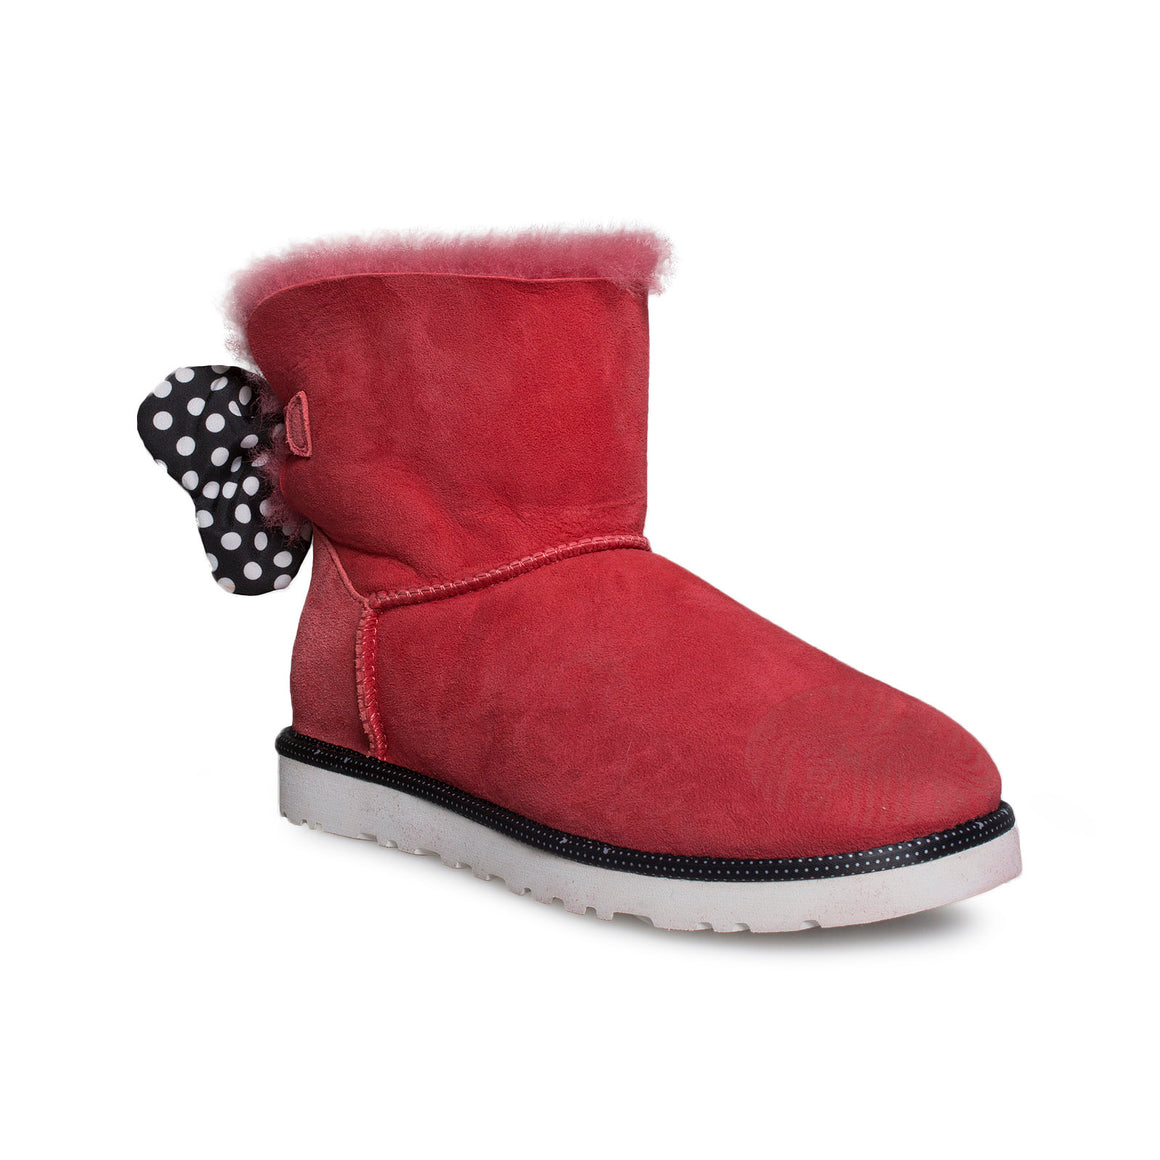 UGG Sweetie Bow Red Boots - Women's